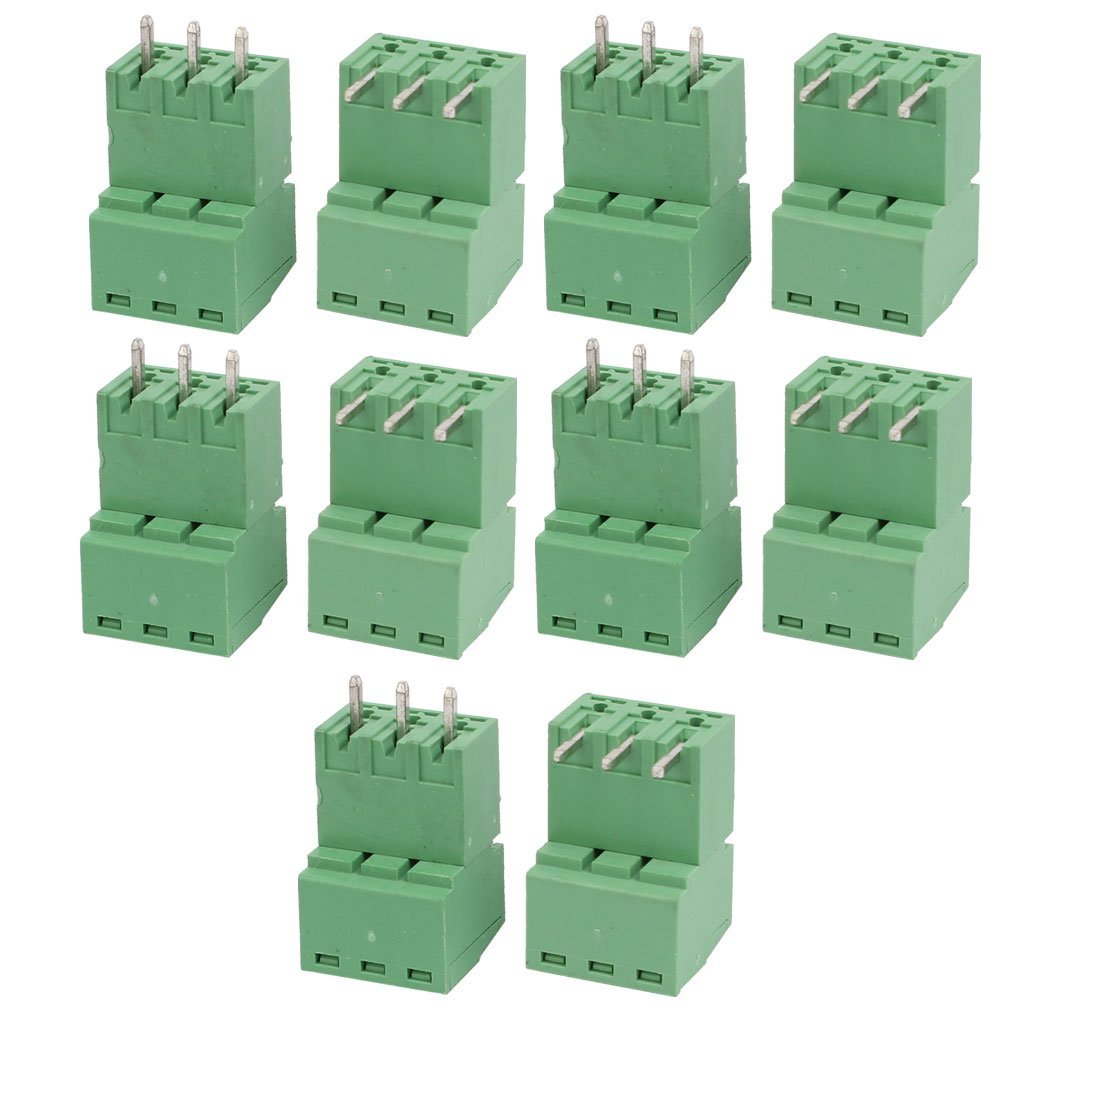 uxcell 10Sets AC 300V 8A 3.81mm Pitch 3P PCB Terminal Block Female Male Wire Connector